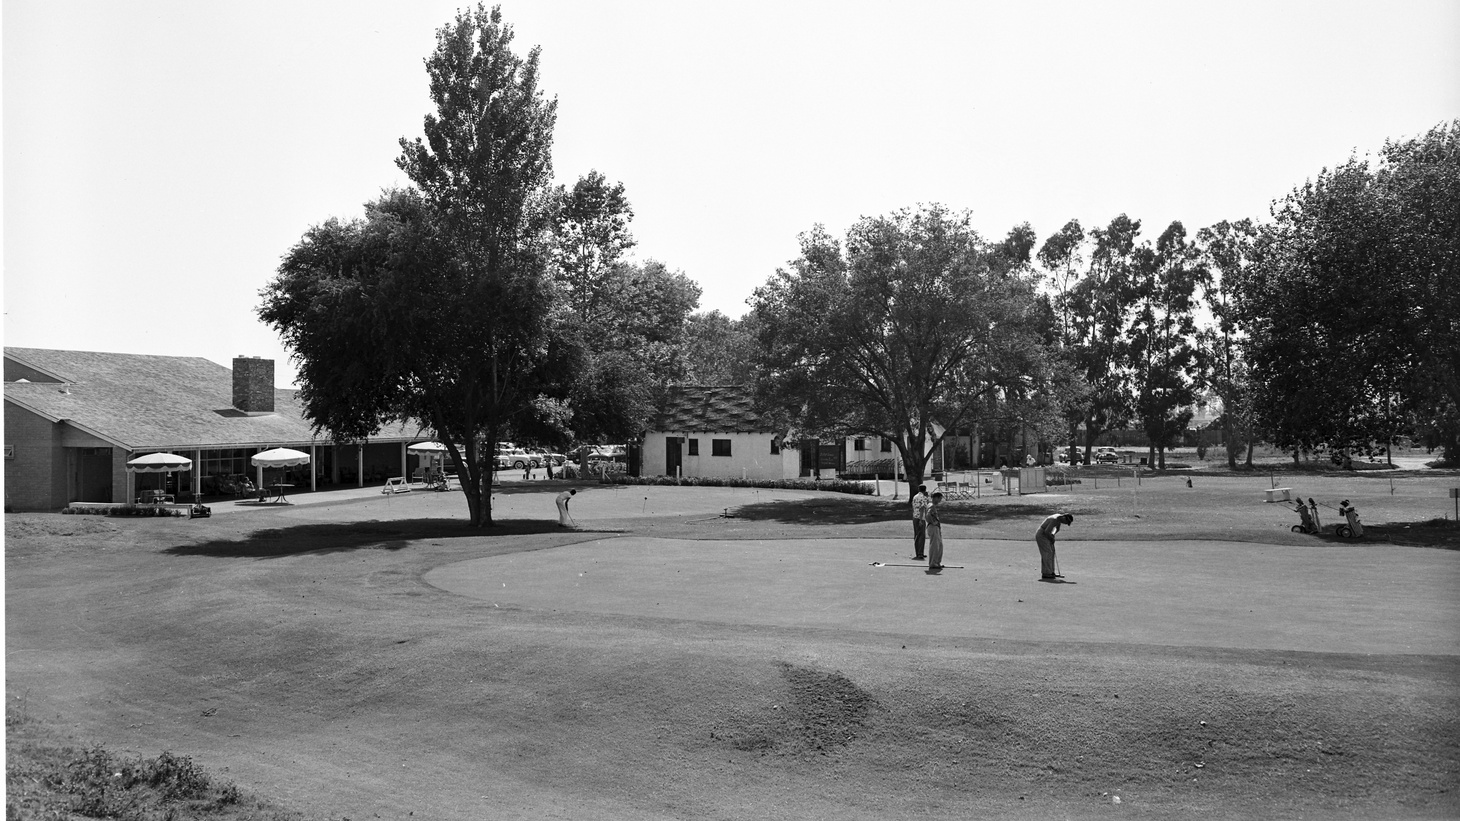 Willowick Golf Course, Santa Ana, July 1952.